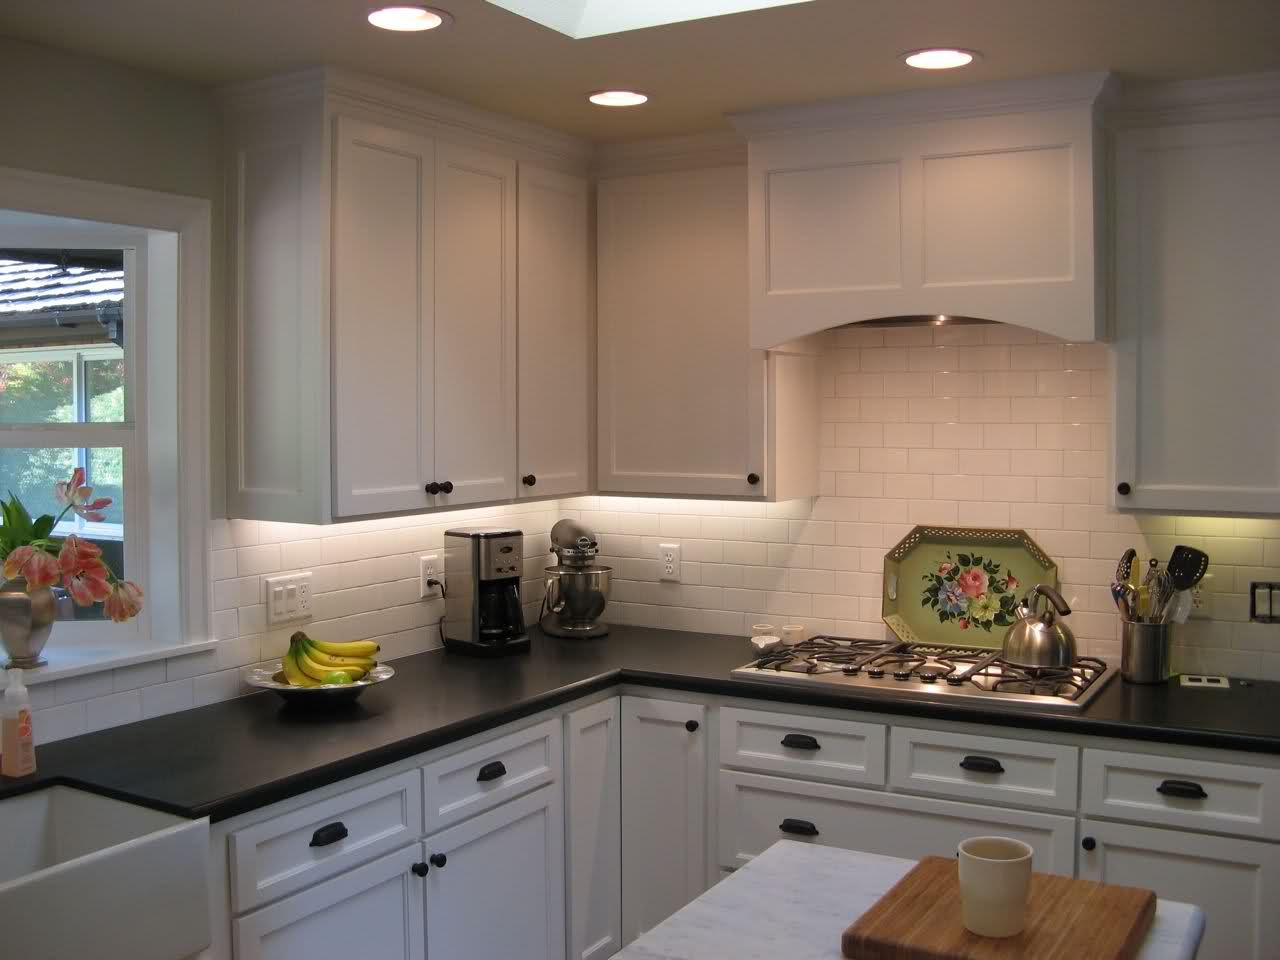 Kitchen Wall Tiles Design Ideas Part - 29: Before Choosing The Type Of Kitchen Tile Design Ideas For Your Kitchen, You  Can See